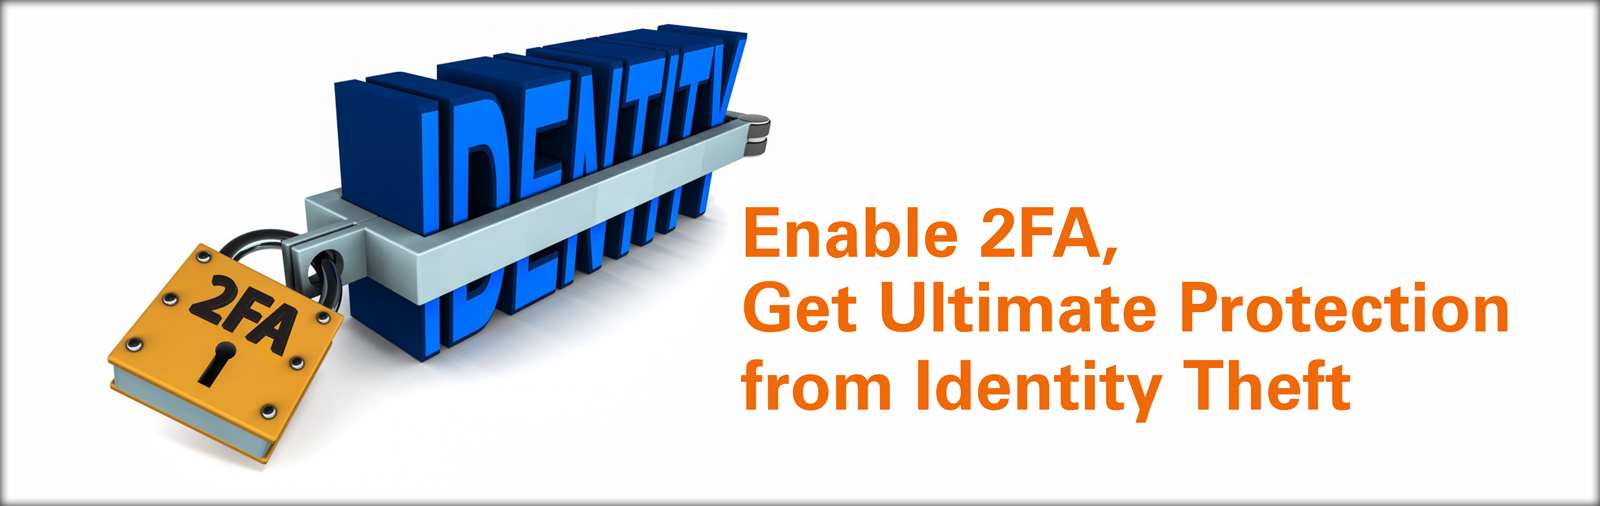 Enable 2FA, Get Ultimate Protection from Identity Theft